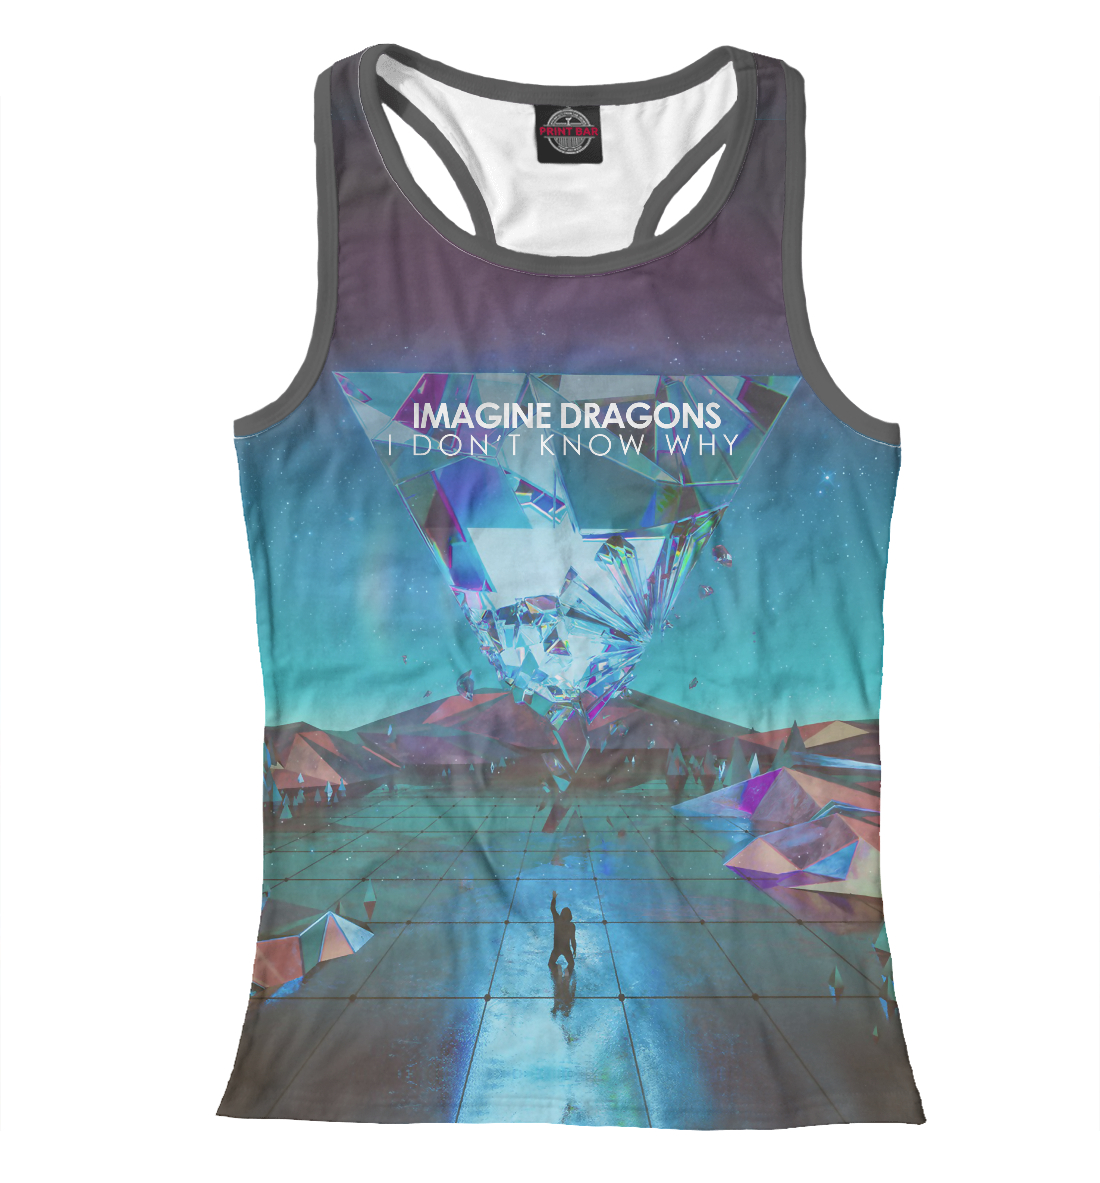 Купить Imagine Dragons / I Don't Know Why, Printbar, Майки борцовки, IMA-324934-mayb-1